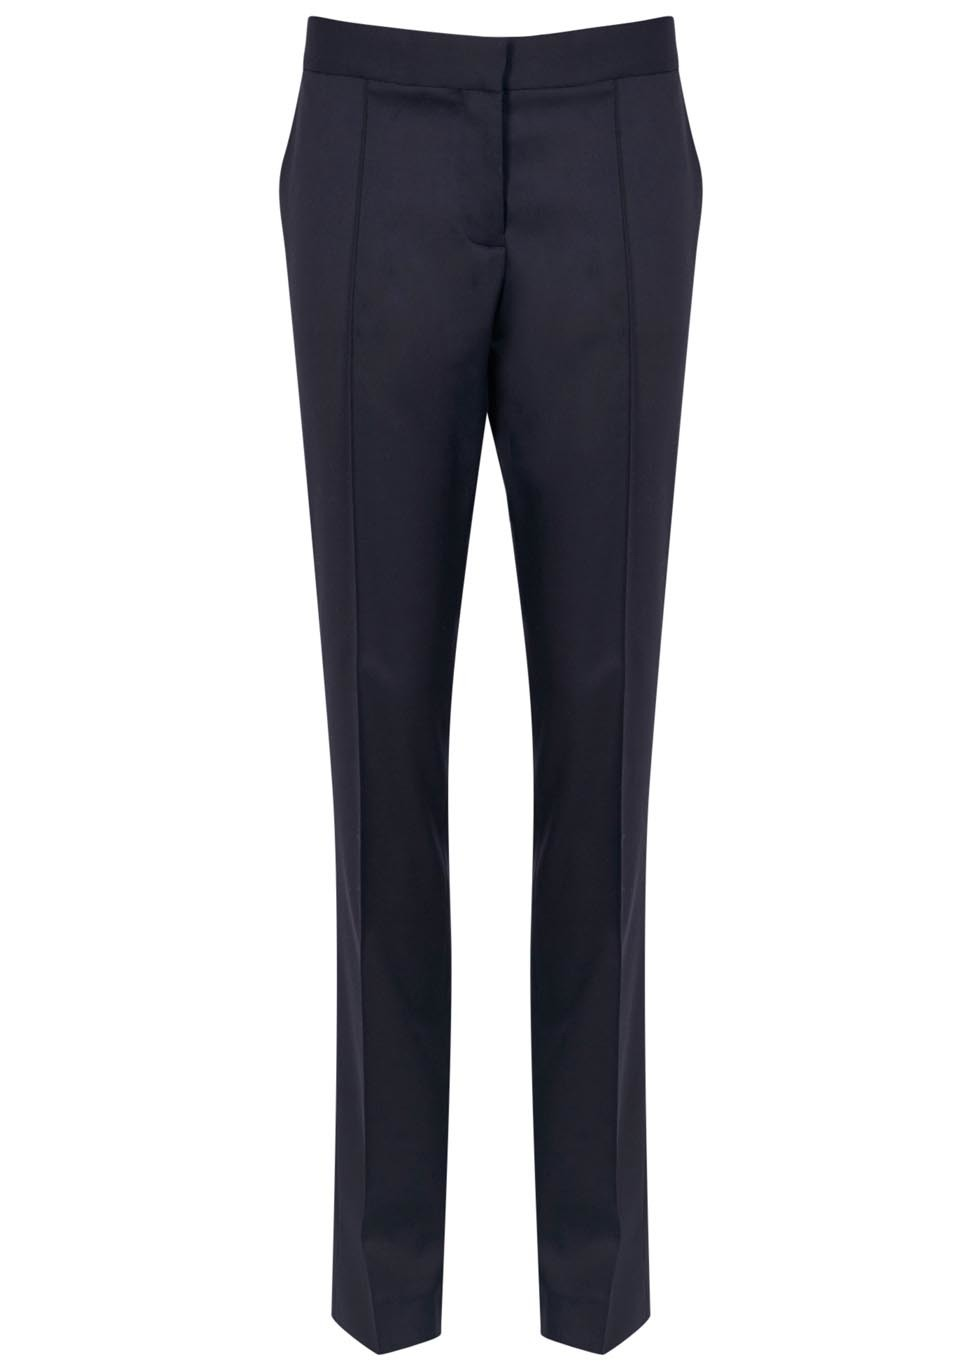 Anna Navy Wool Trousers - length: standard; pattern: plain; waist: mid/regular rise; predominant colour: navy; occasions: casual, work, creative work; fibres: wool - 100%; fit: straight leg; pattern type: fabric; texture group: woven light midweight; style: standard; pattern size: standard (bottom); season: a/w 2015